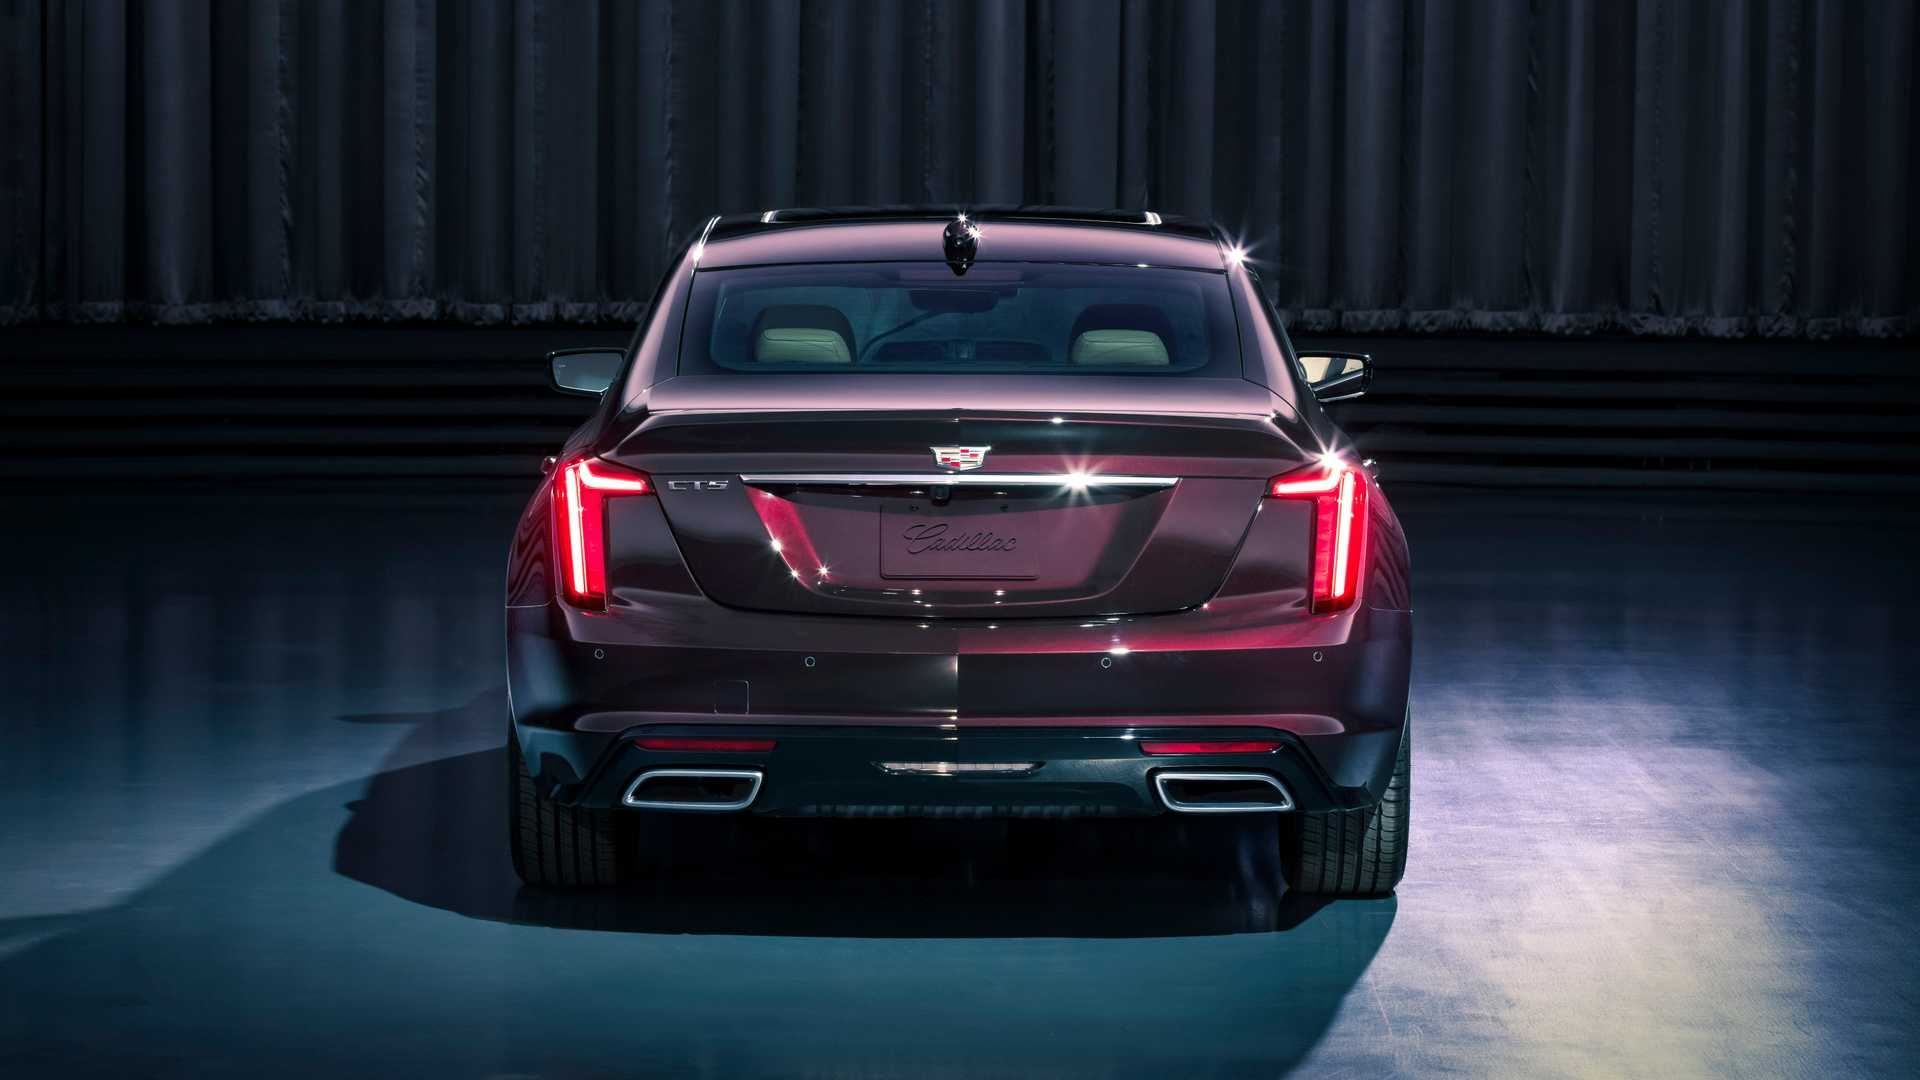 45 New Cadillac Cts 2020 Picture